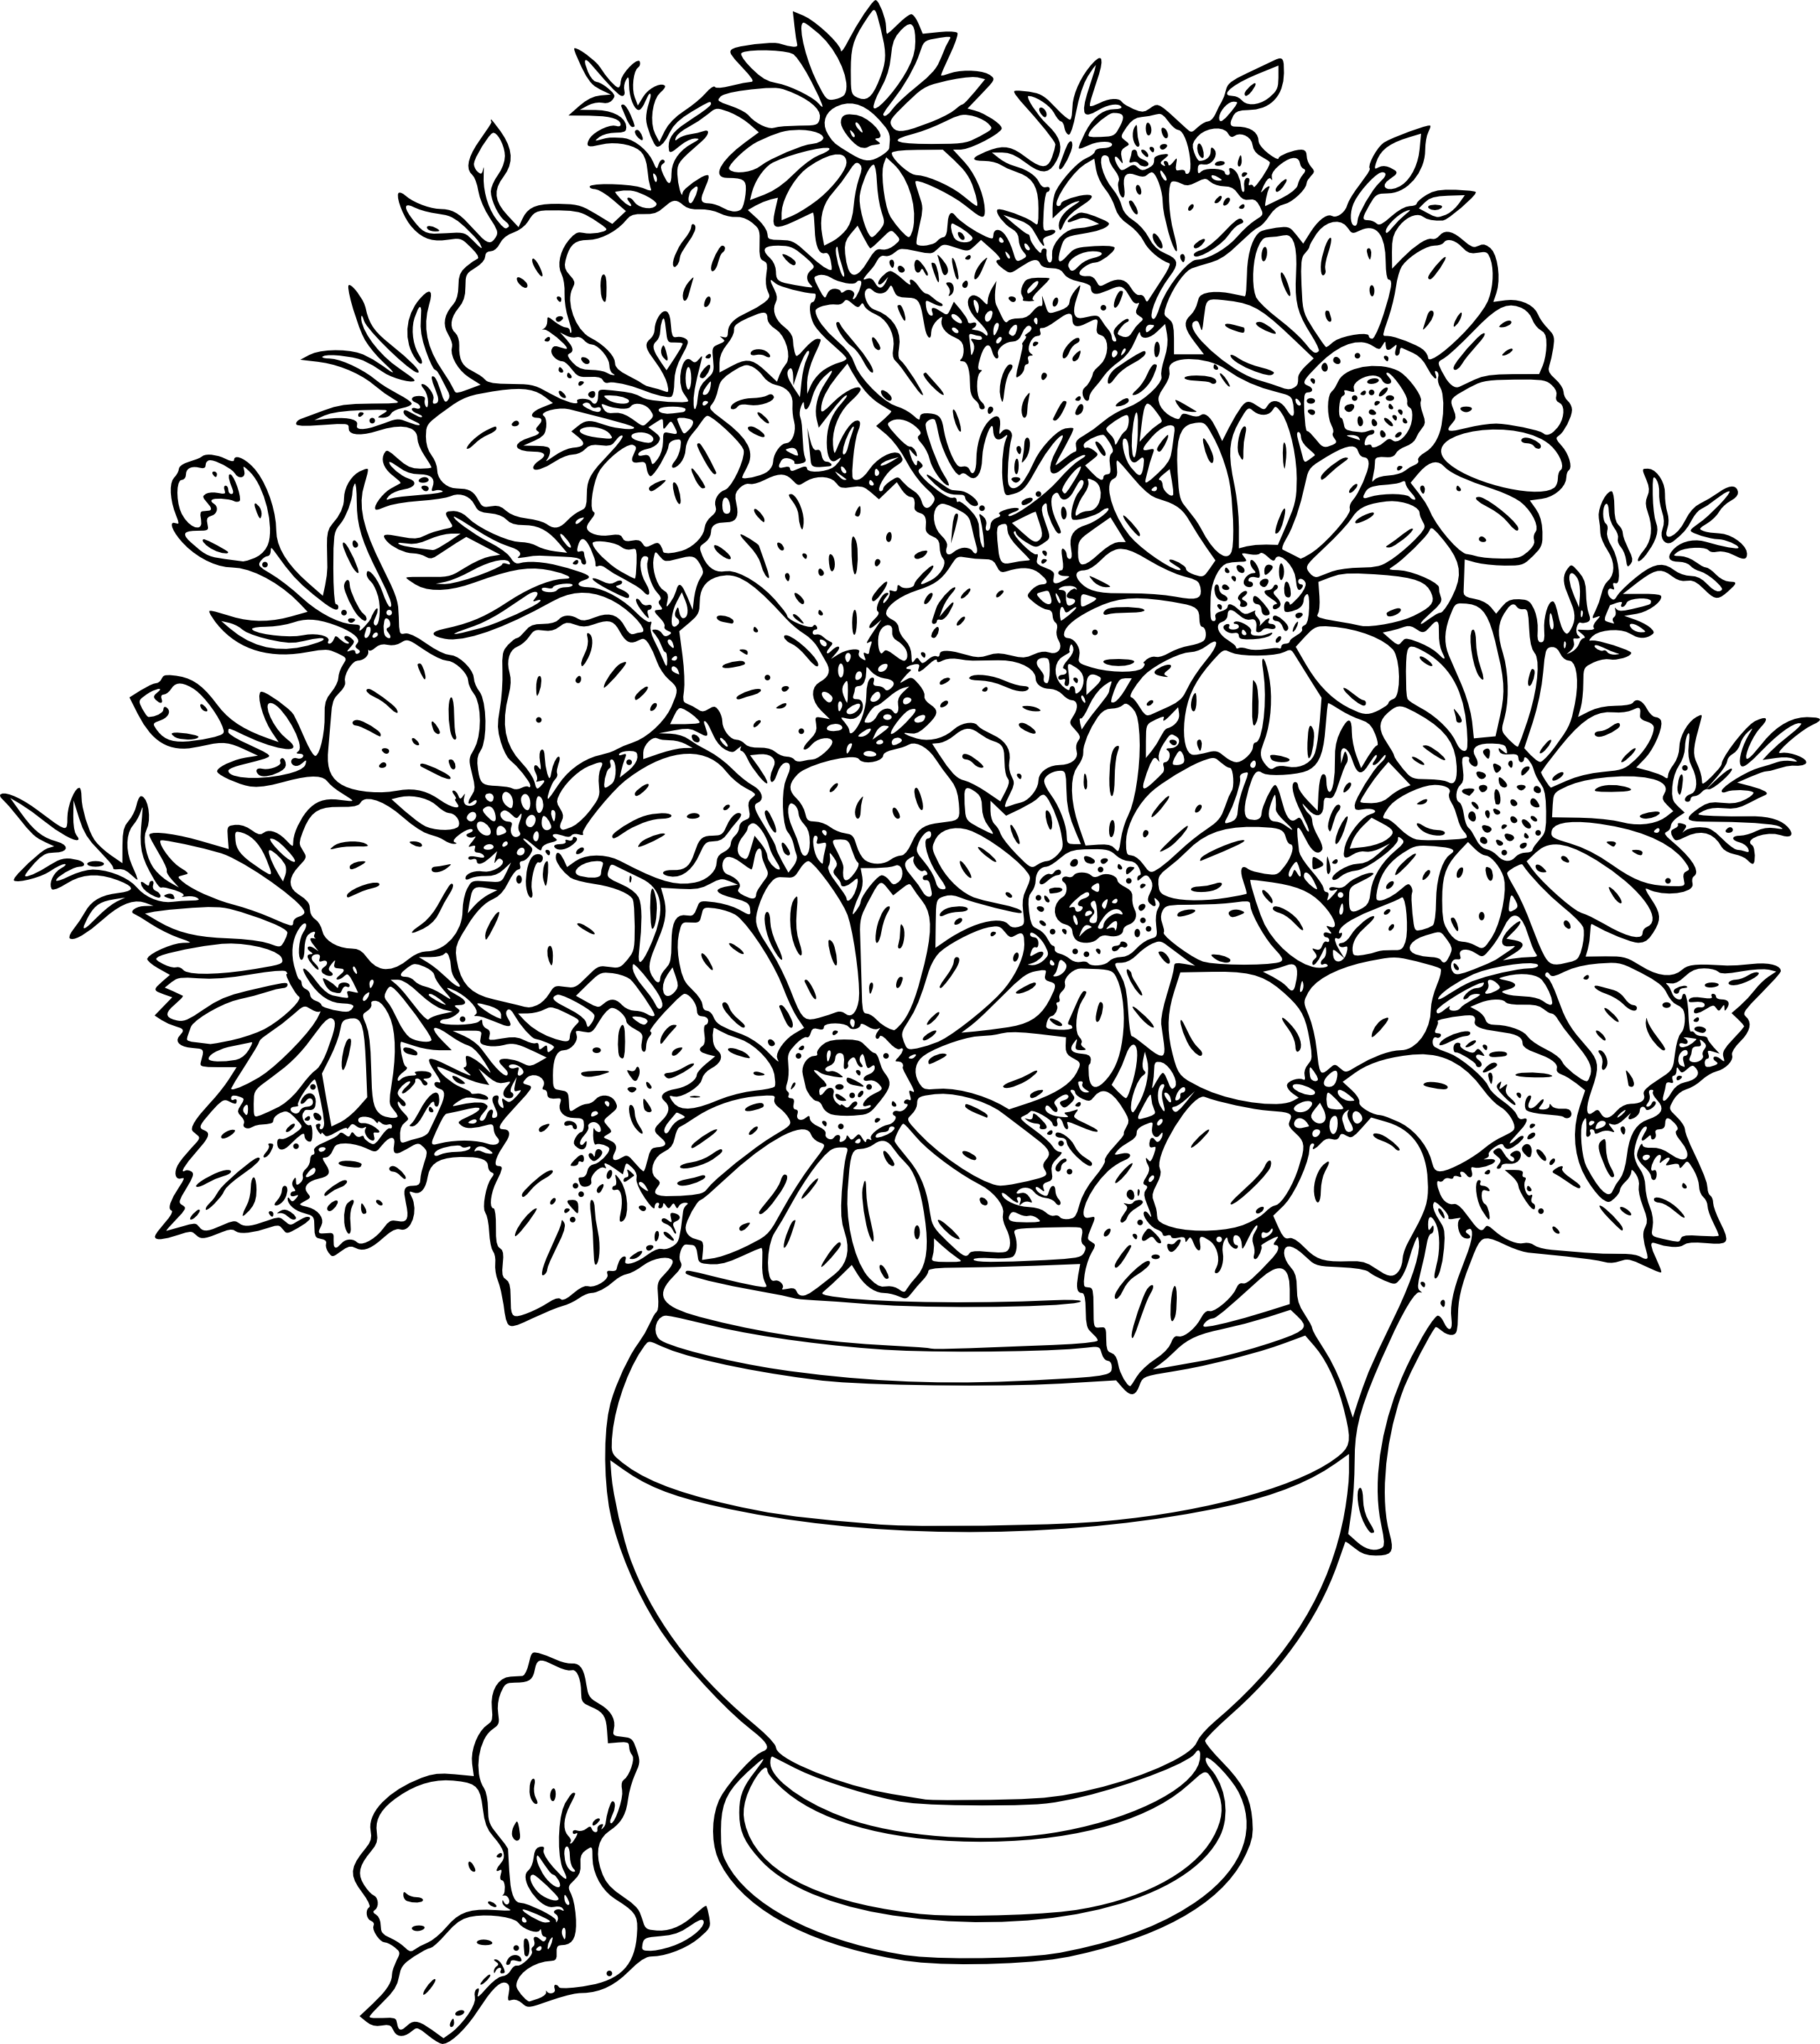 Line Art Flower Drawing : Flowers line drawing images clipart best